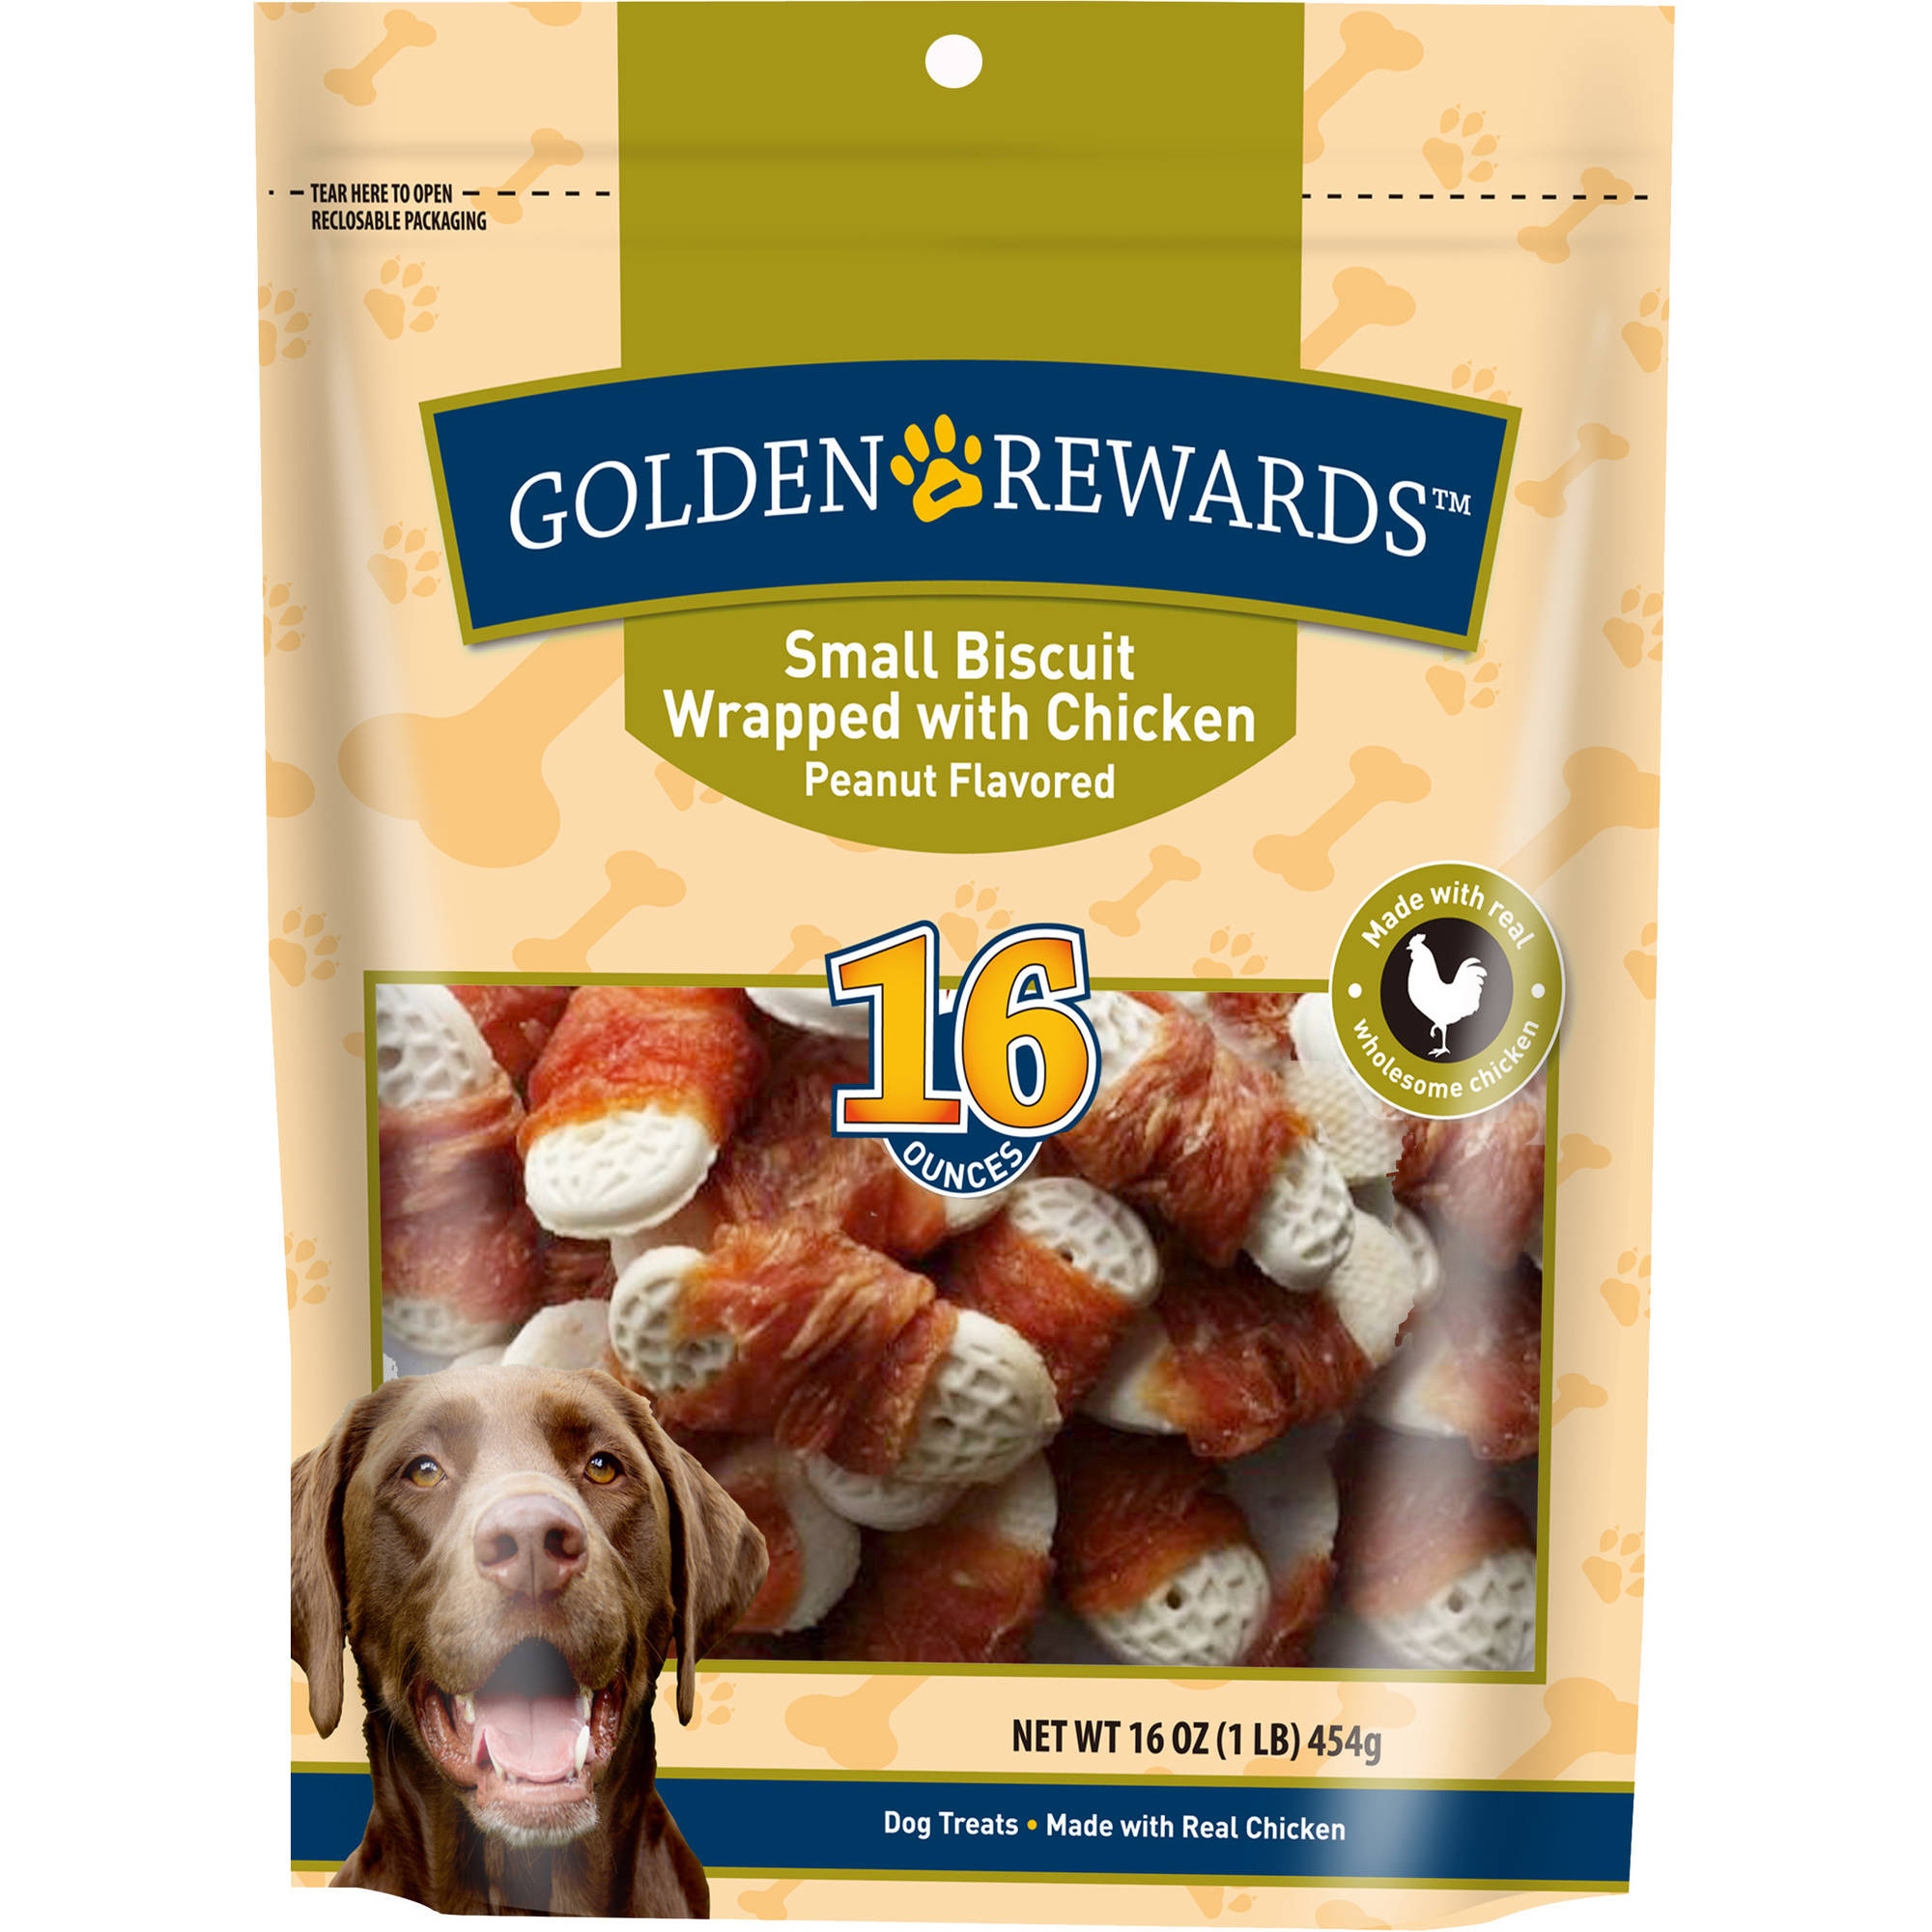 Golden Rewards Small Biscuit Wrapped With Chicken Peanut Flavored Dog Treats, 16 Oz